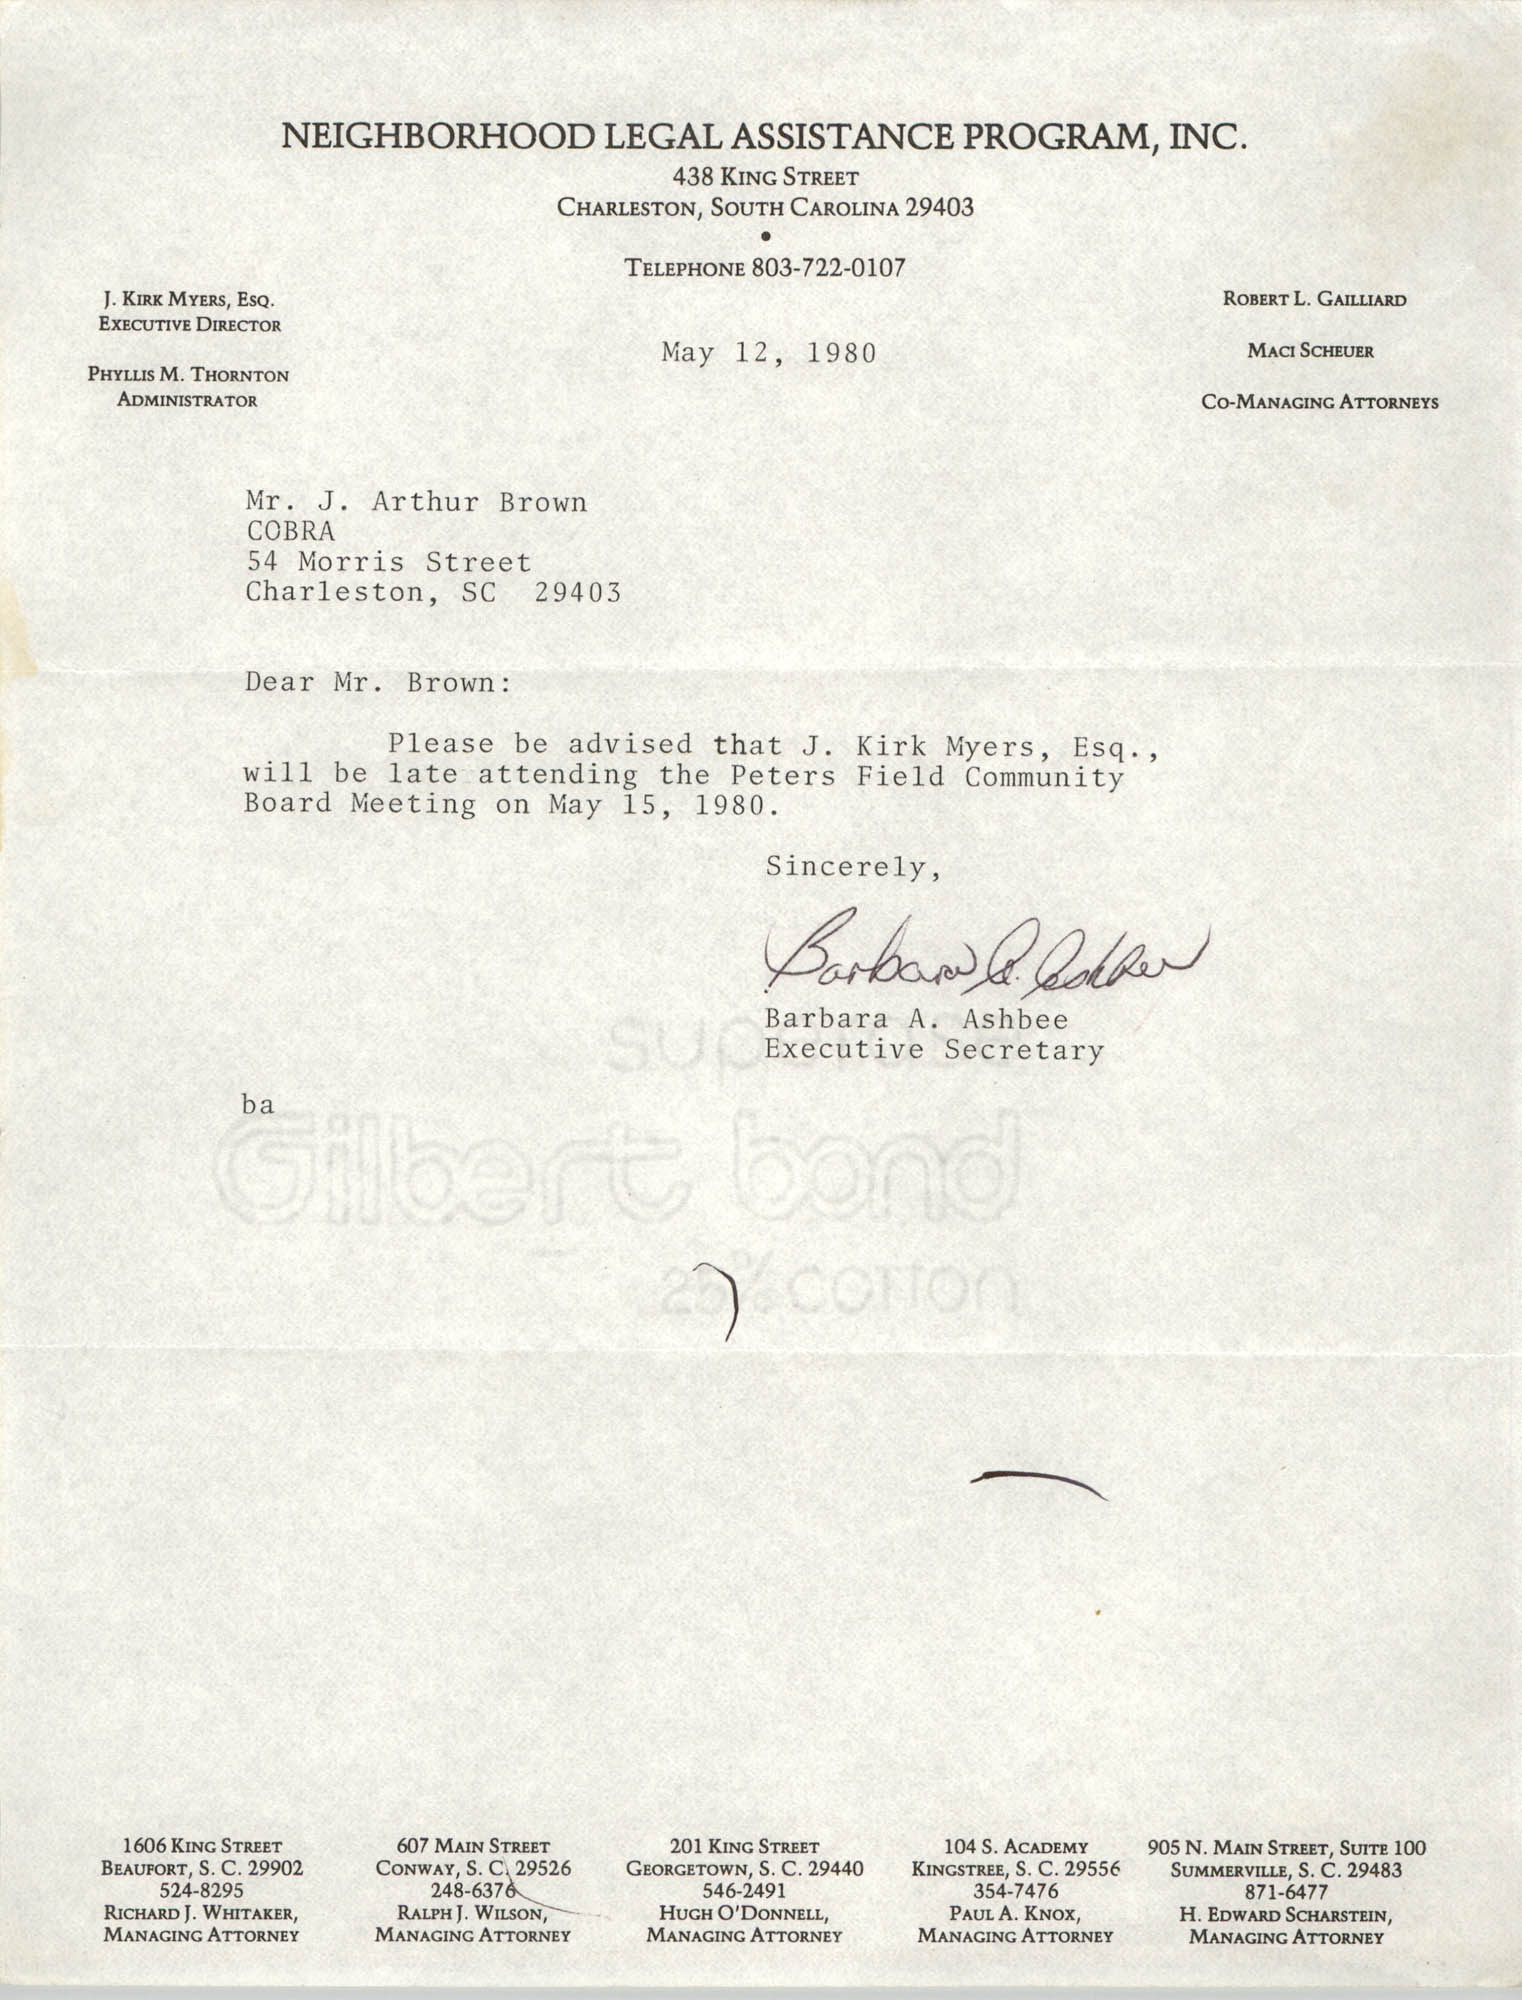 Letter from Barbara A. Ashbee to J. Arthur Brown, May 12, 1980